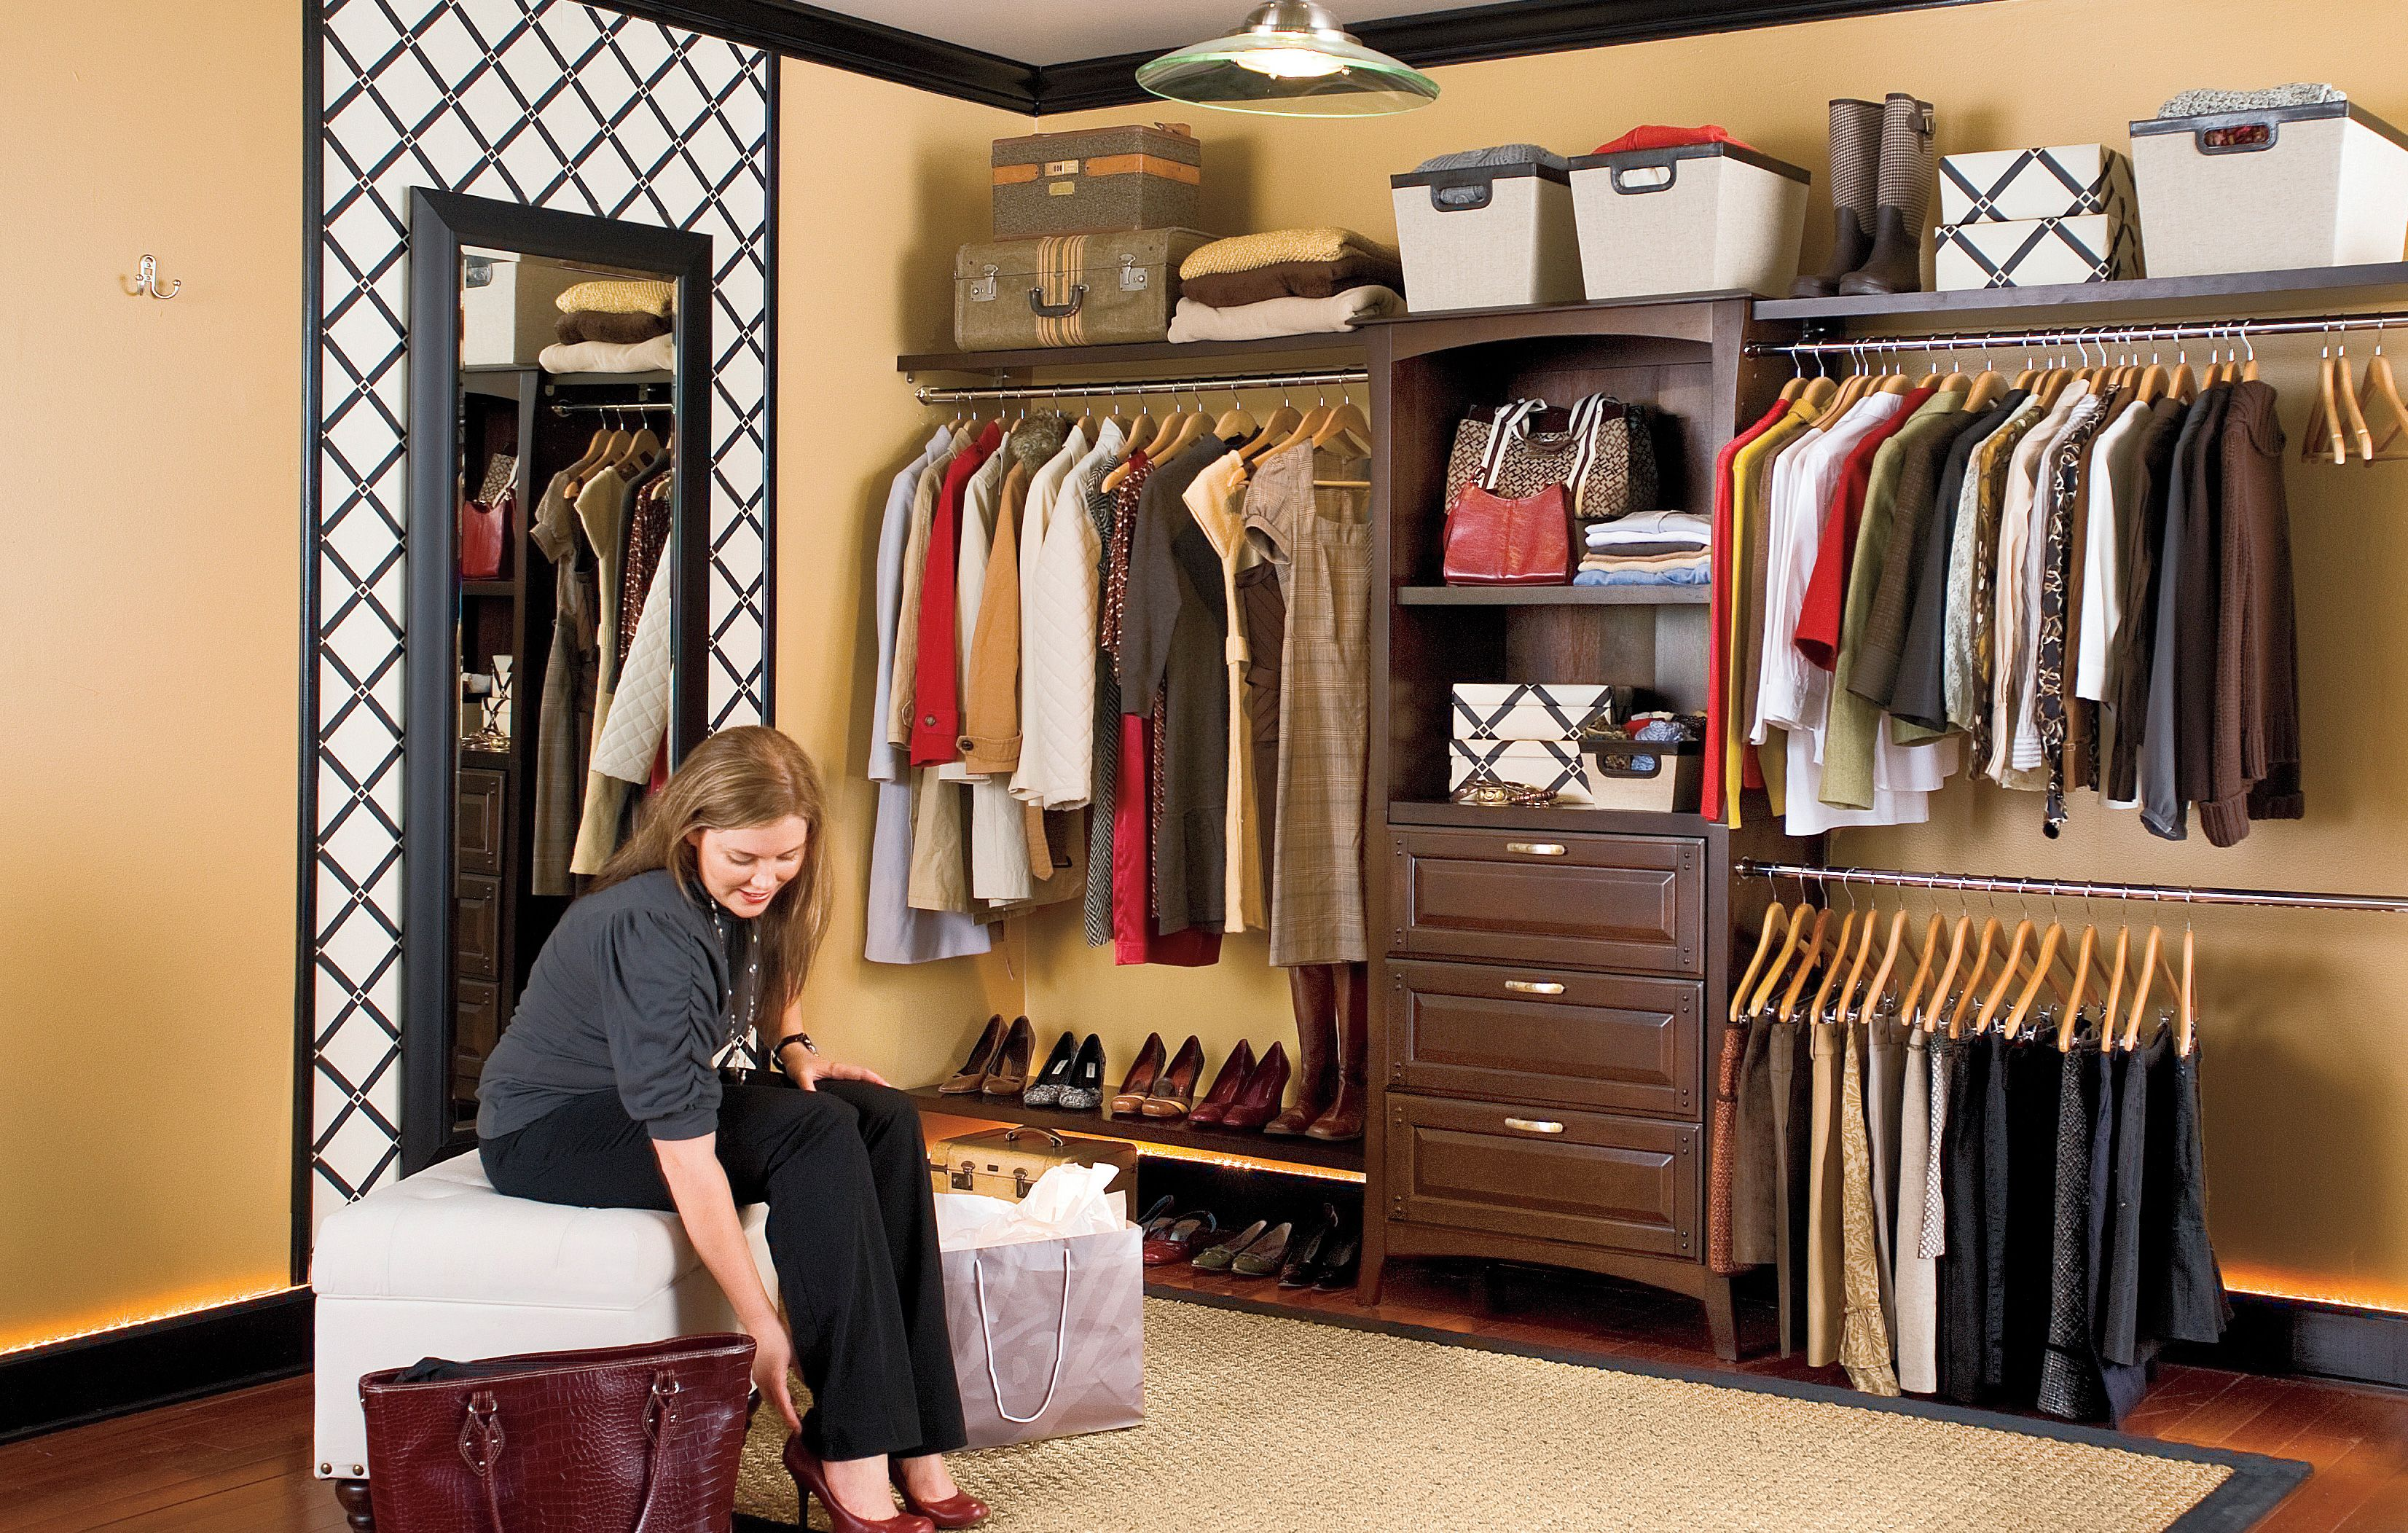 Ross Closet Racks   Google Search | Useful Tips | Pinterest | Allen Roth  Closet, Allen Roth And Bedroom Closets